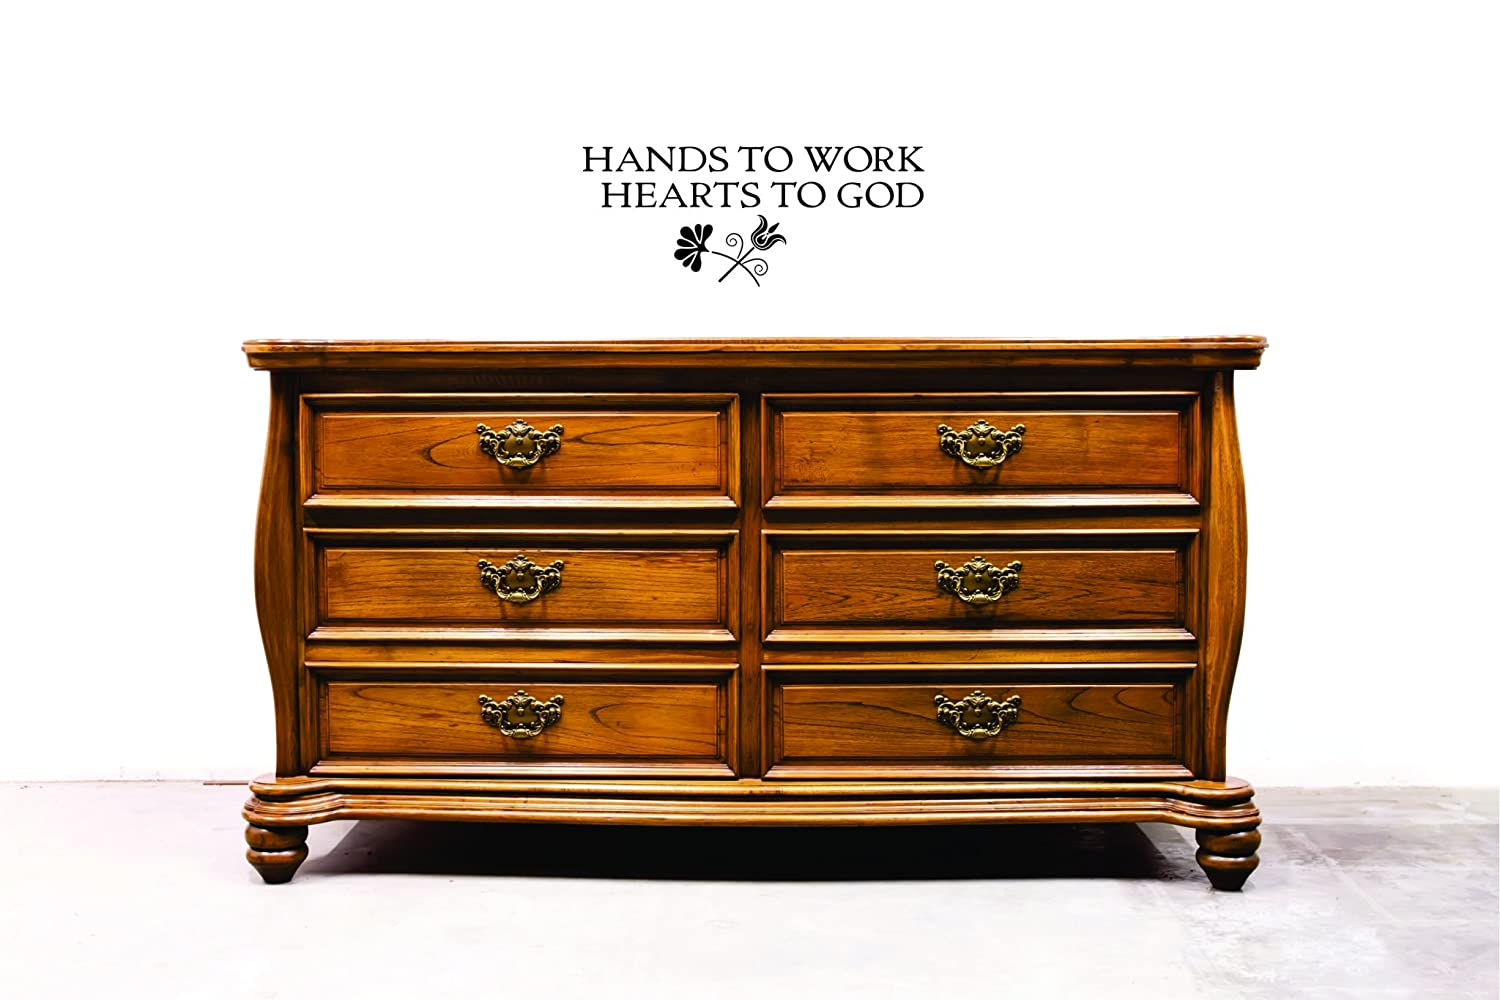 Design with Vinyl JER 2326 3 Hot New Decals Hands to work hearts to God Wall Art Size Black 20 x 40 20 Inches x 40 Inches Color